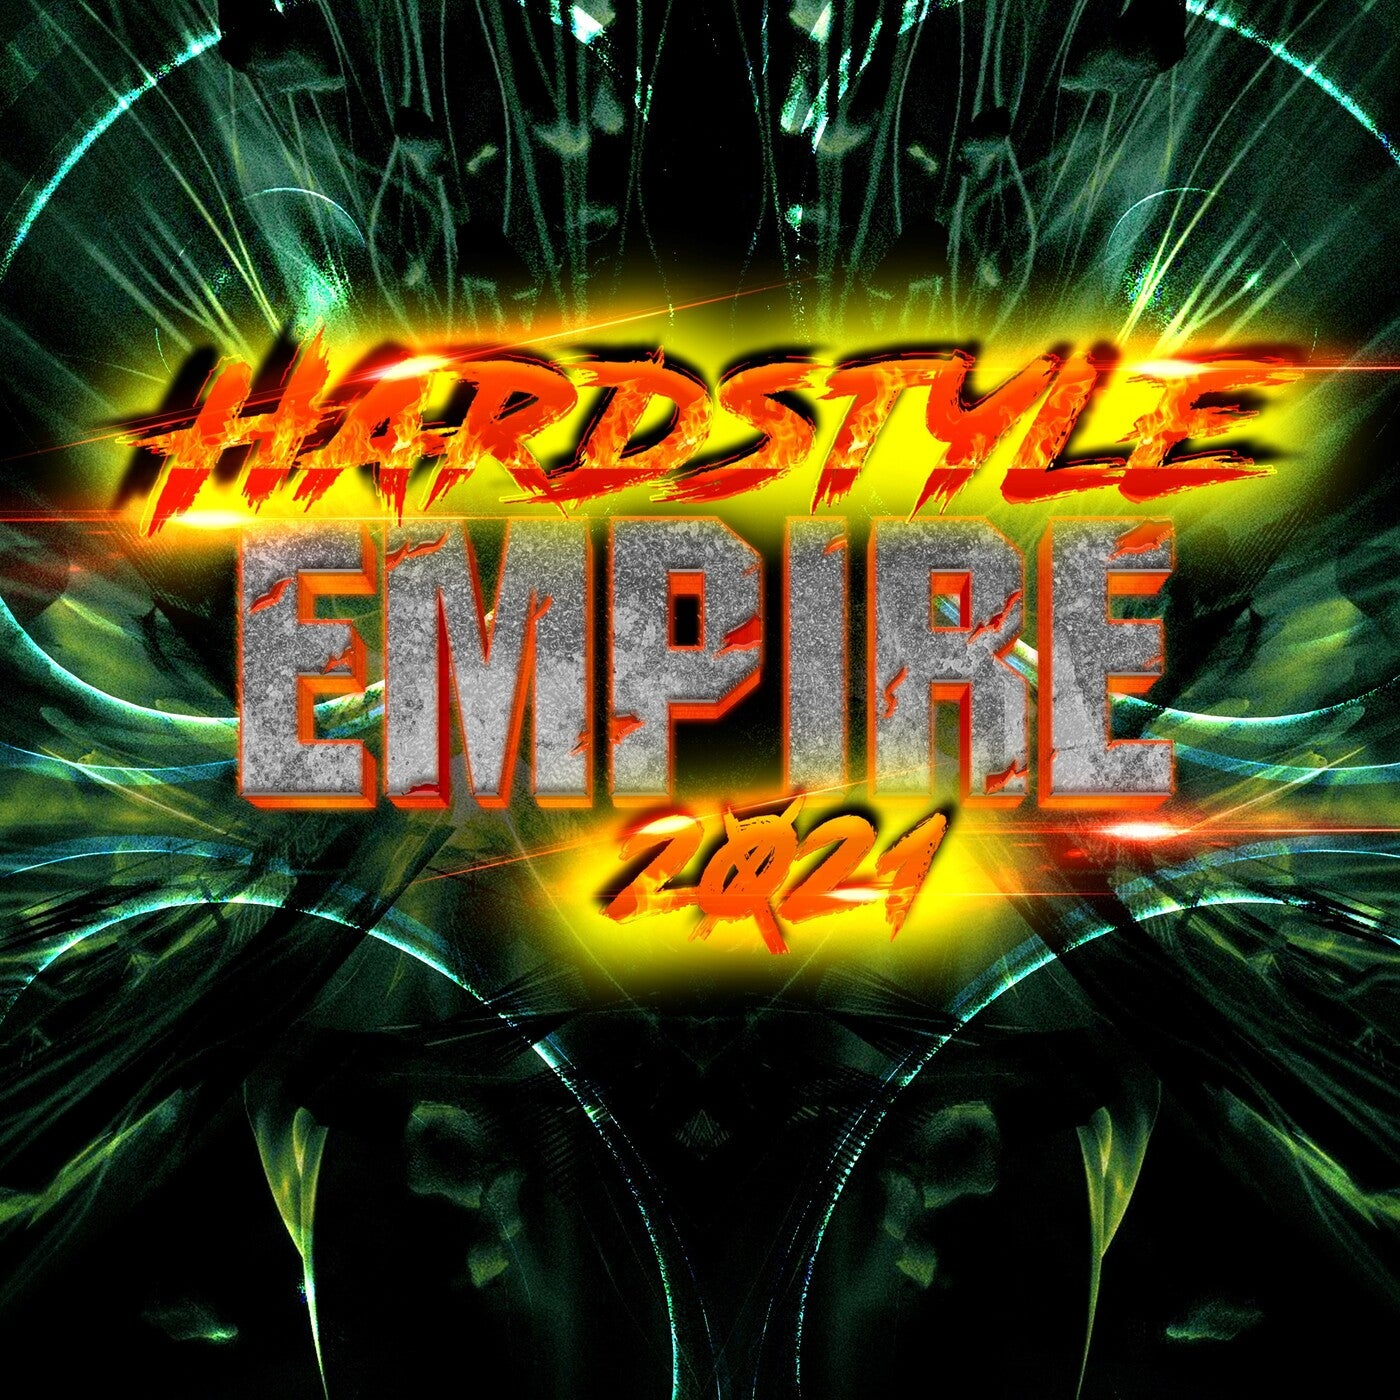 Various Performers - Hardstyle Empire 2021 (2021)